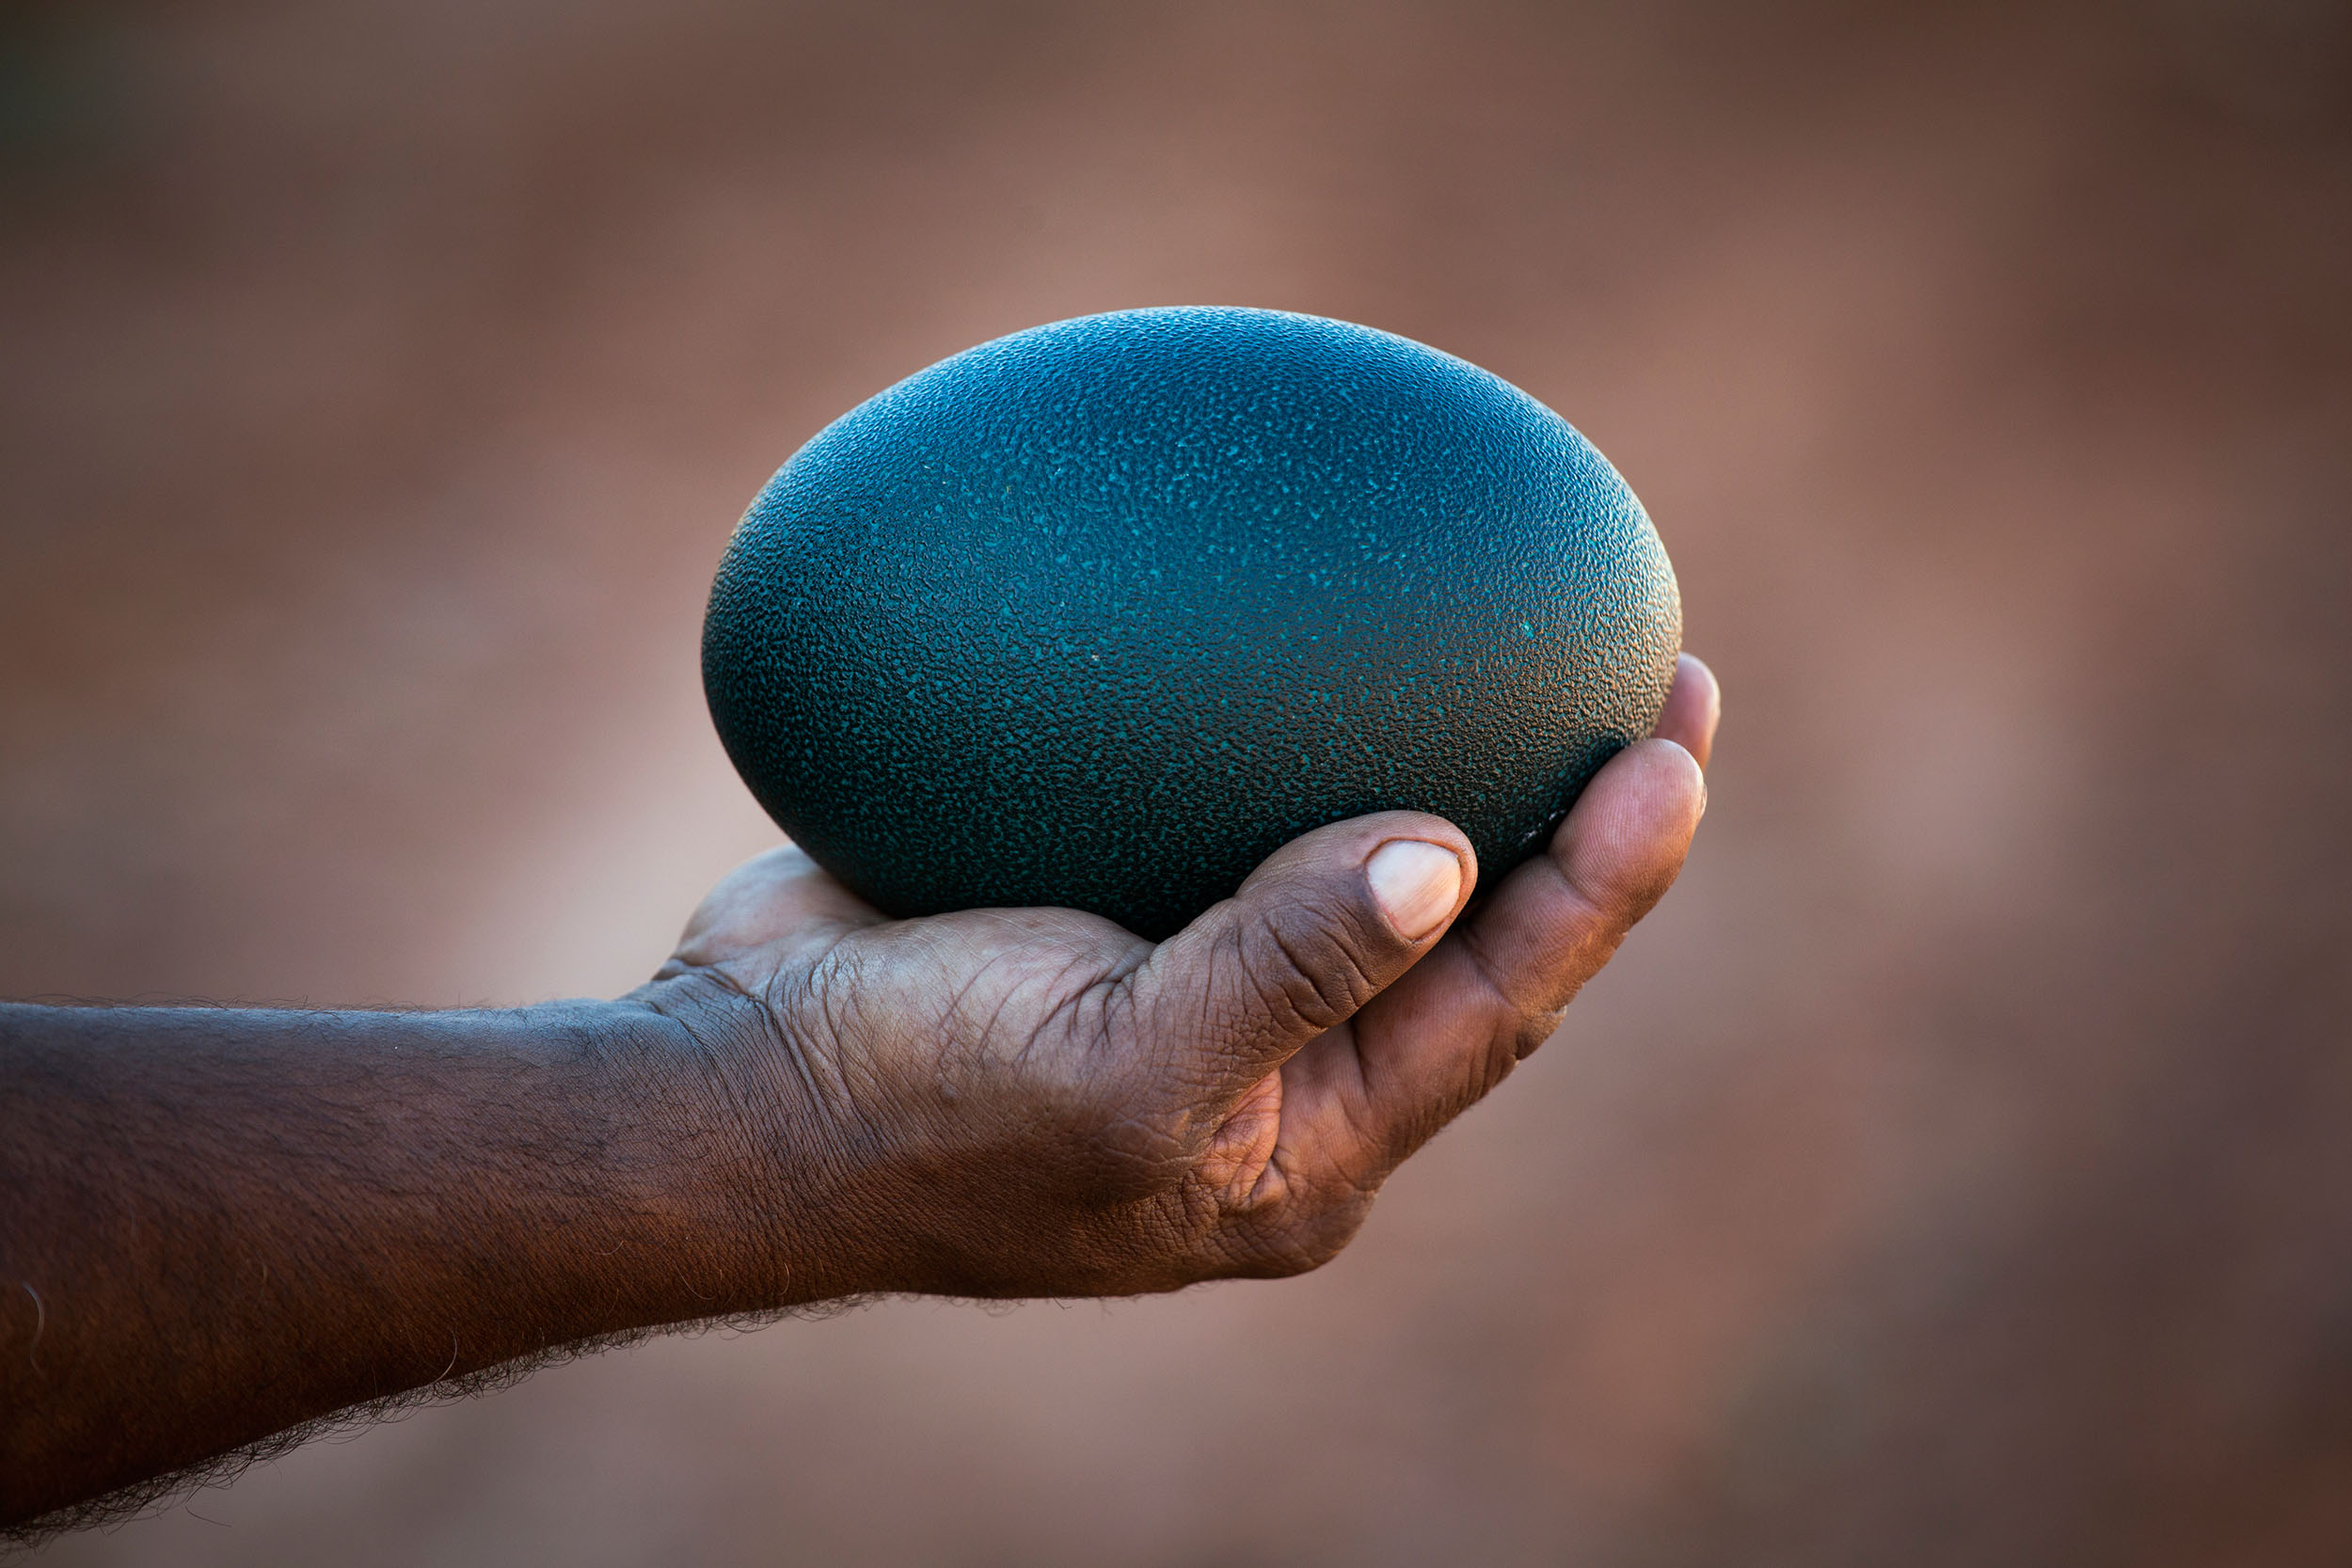 Peter holding an emu egg, Mutawintji National Park, NSW.